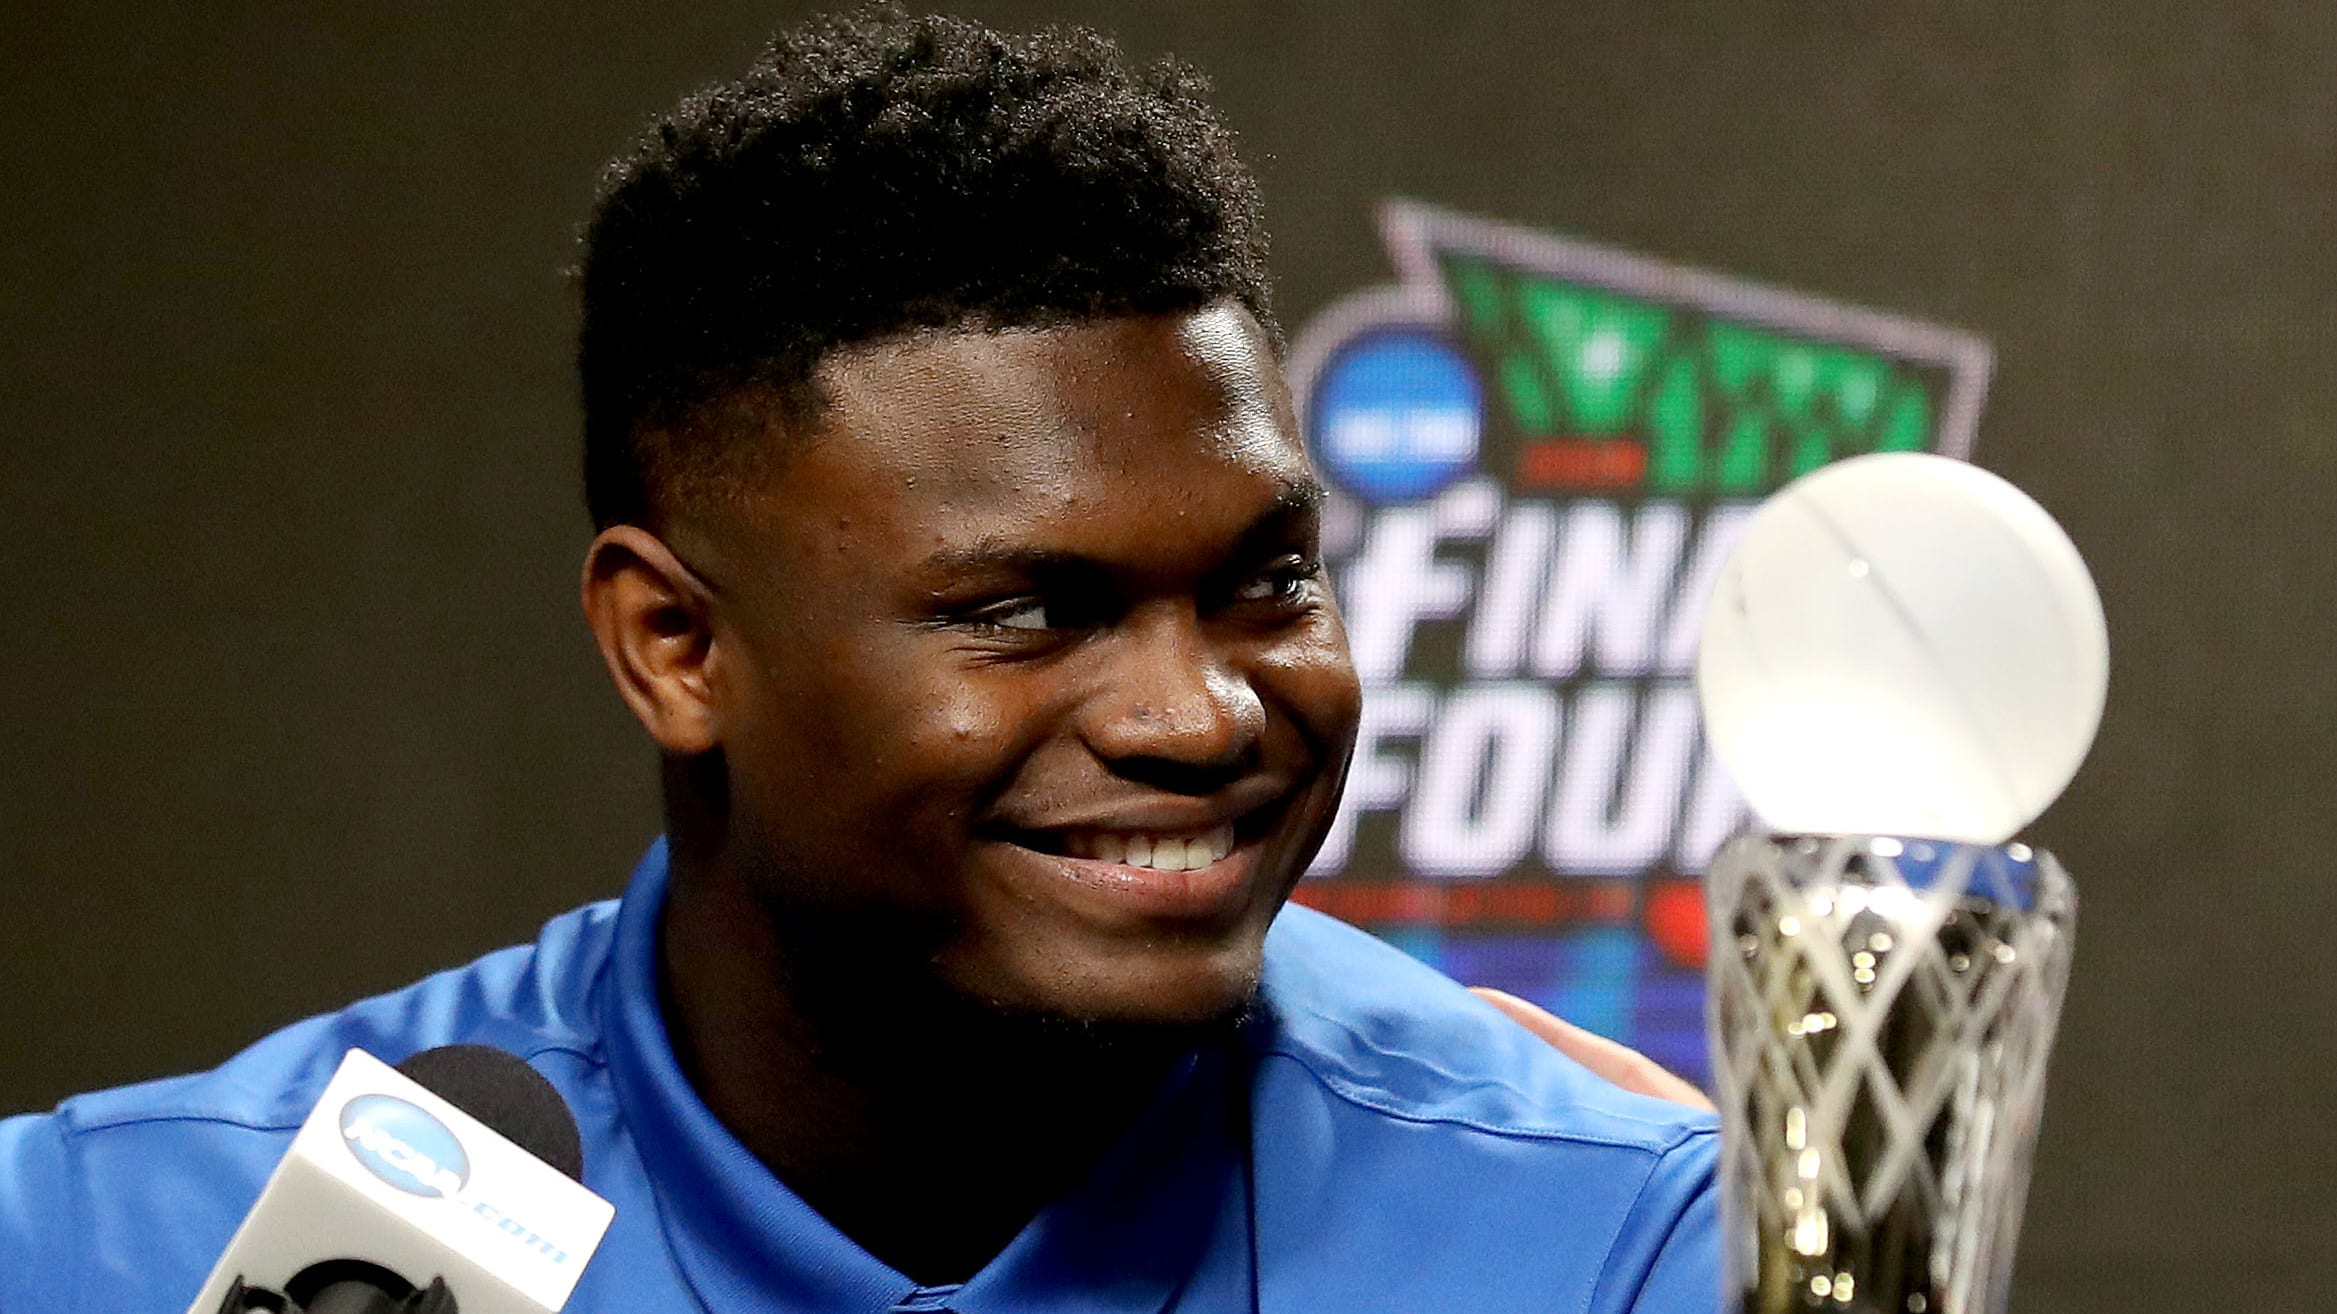 MINNEAPOLIS, MINNESOTA - APRIL 05: Zion Williamson of the Duke Blue Devils speaks during a press conference after being awarded the AP Player of the Year award prior to the 2019 NCAA men's Final Four at U.S. Bank Stadium on April 5, 2019 in Minneapolis, Minnesota. (Photo by Maxx Wolfson/Getty Images)